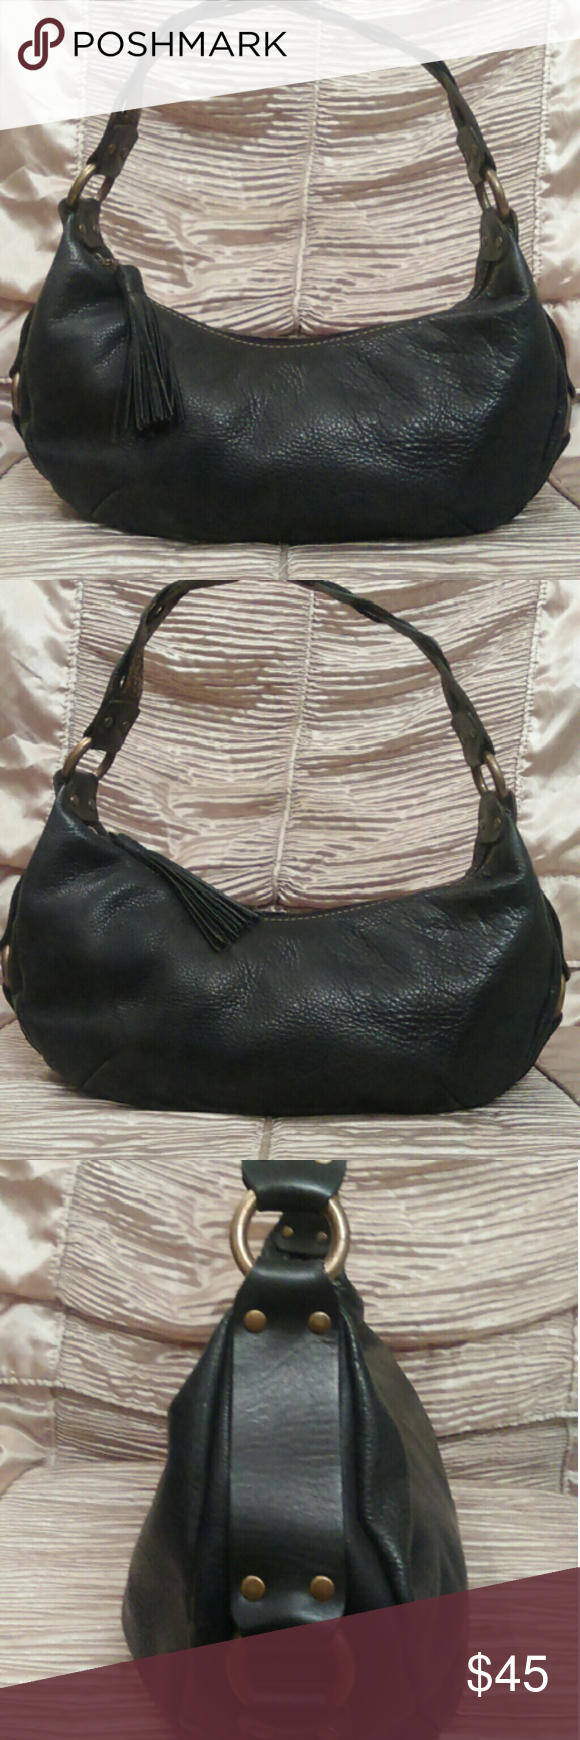 Fossil Vintage Black Leather Purse - Beautiful! Authentic vintage Fossil black leather purse, braided leather strap, retro style, brass hardware, very sturdy leather, good vintage condition. Fossil Bags Shoulder Bags